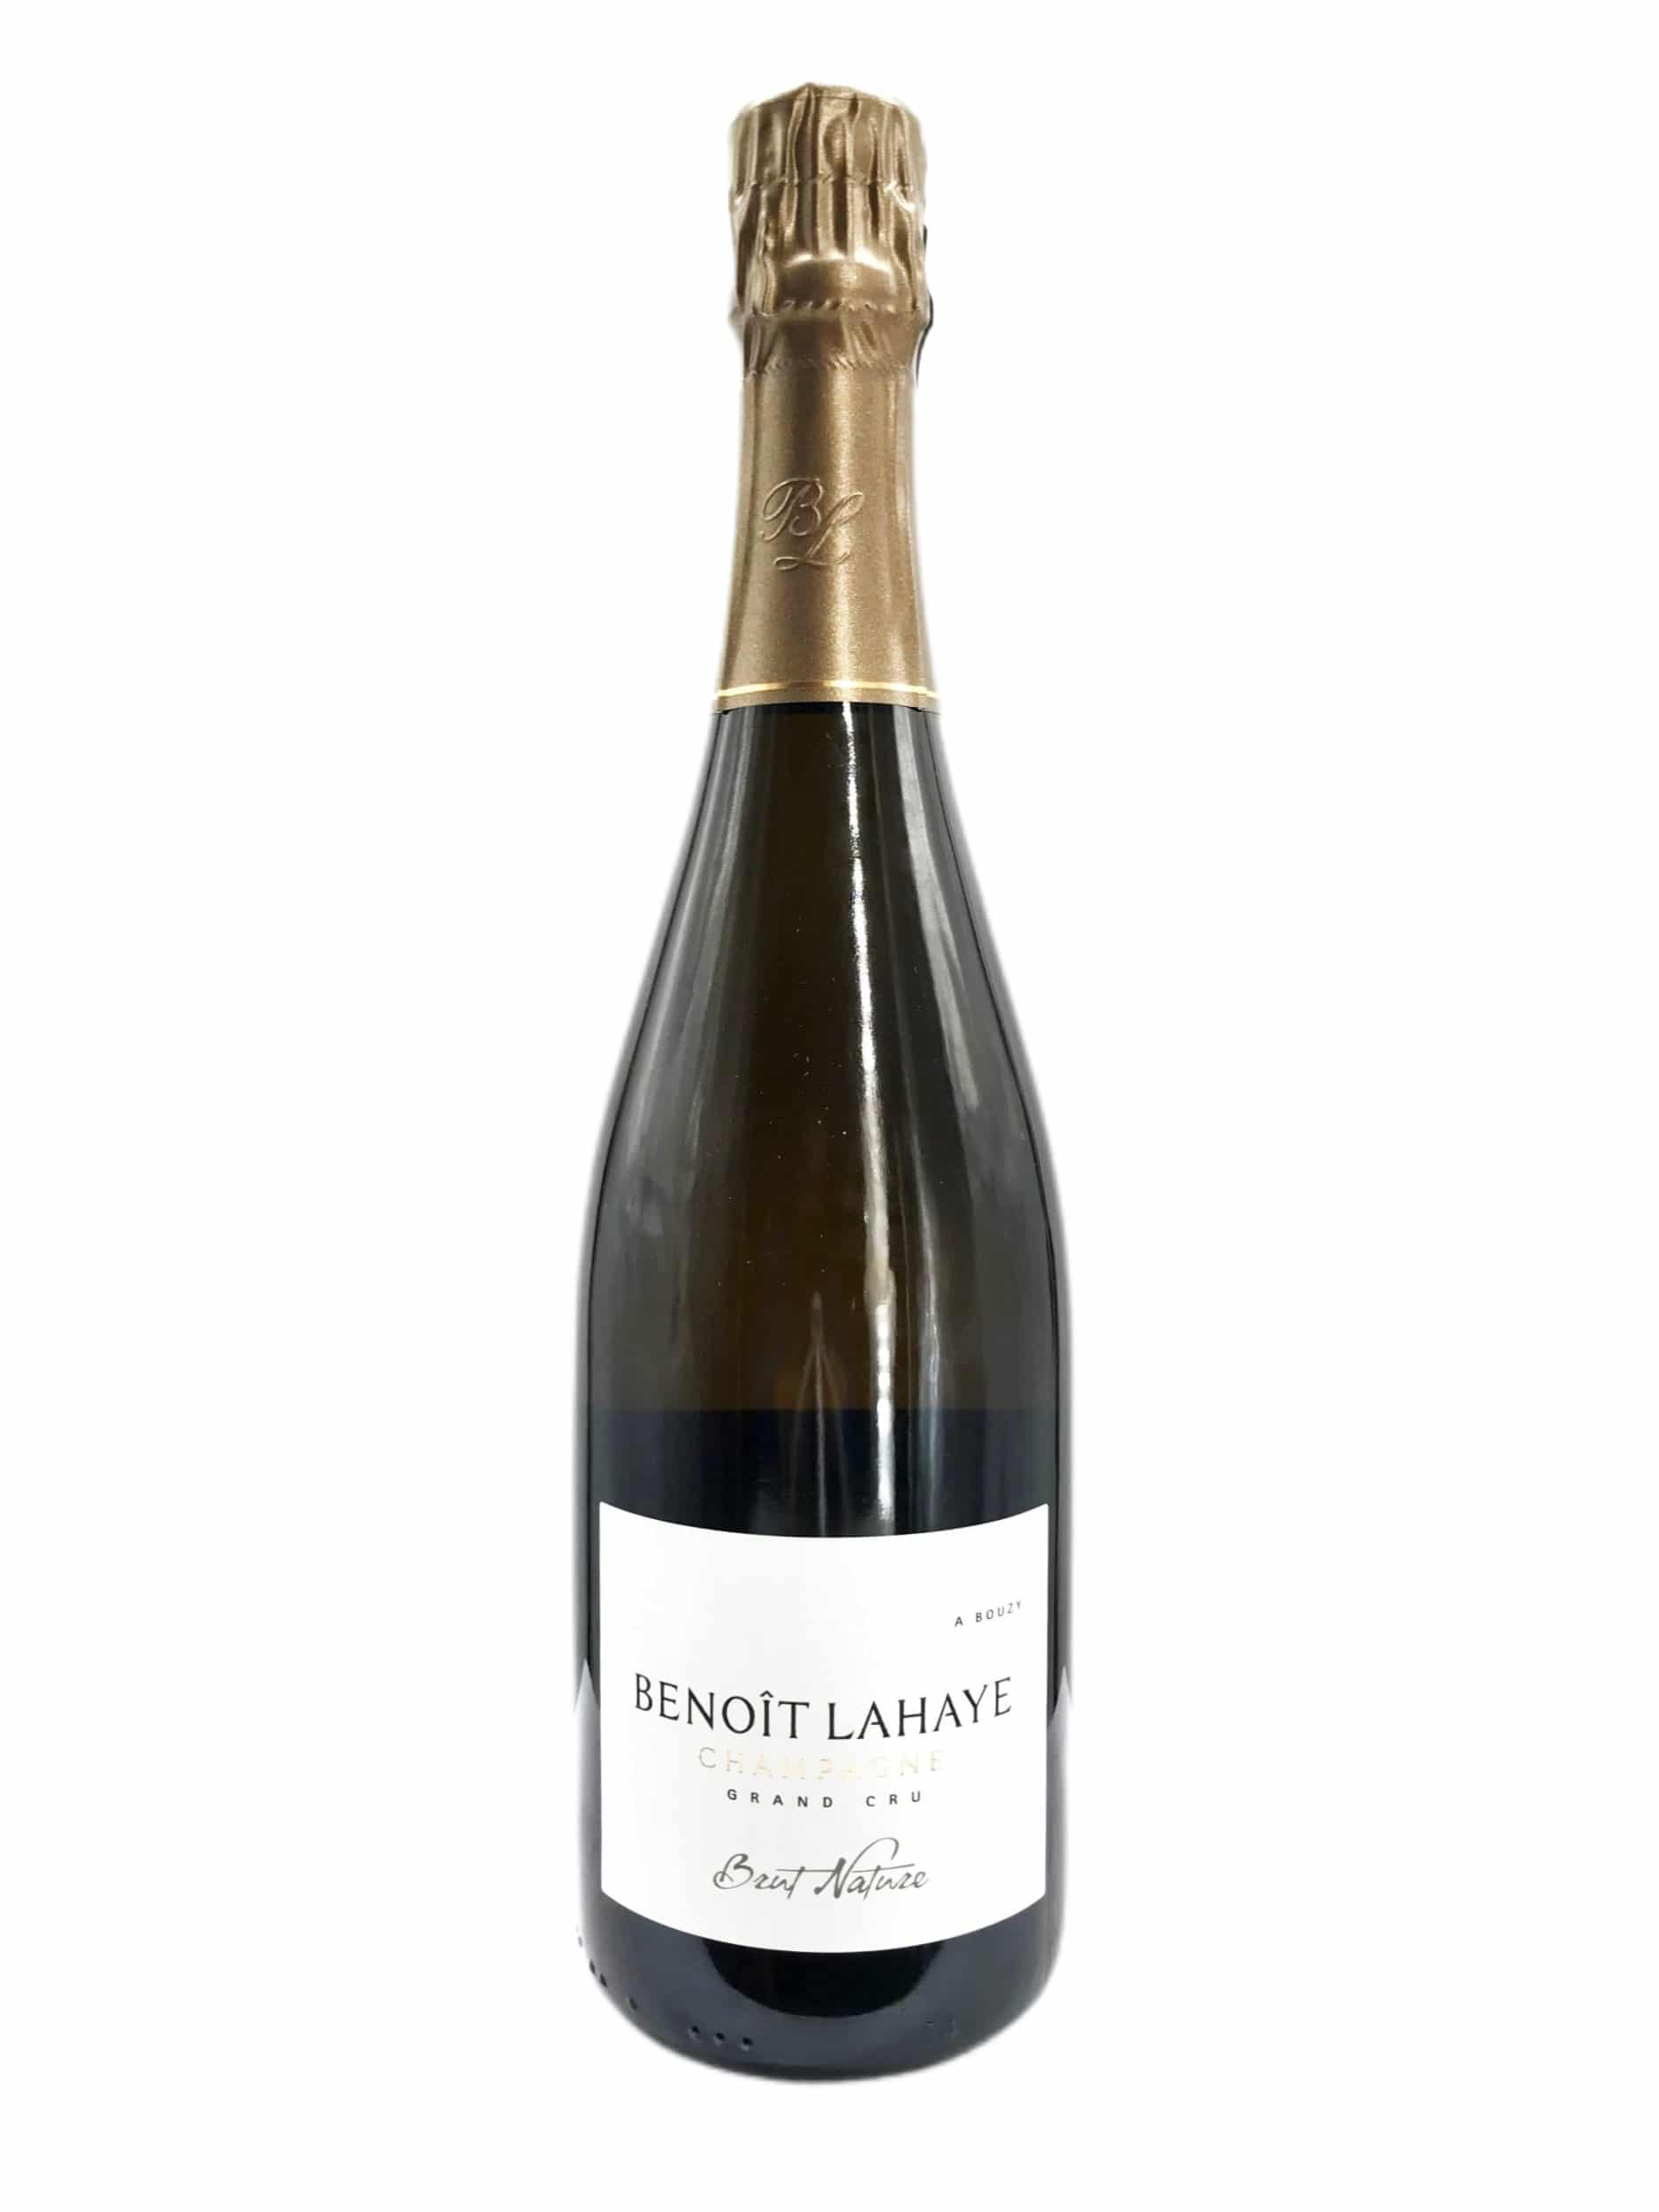 Benoit Lahaye Brut Nature Grand Cru